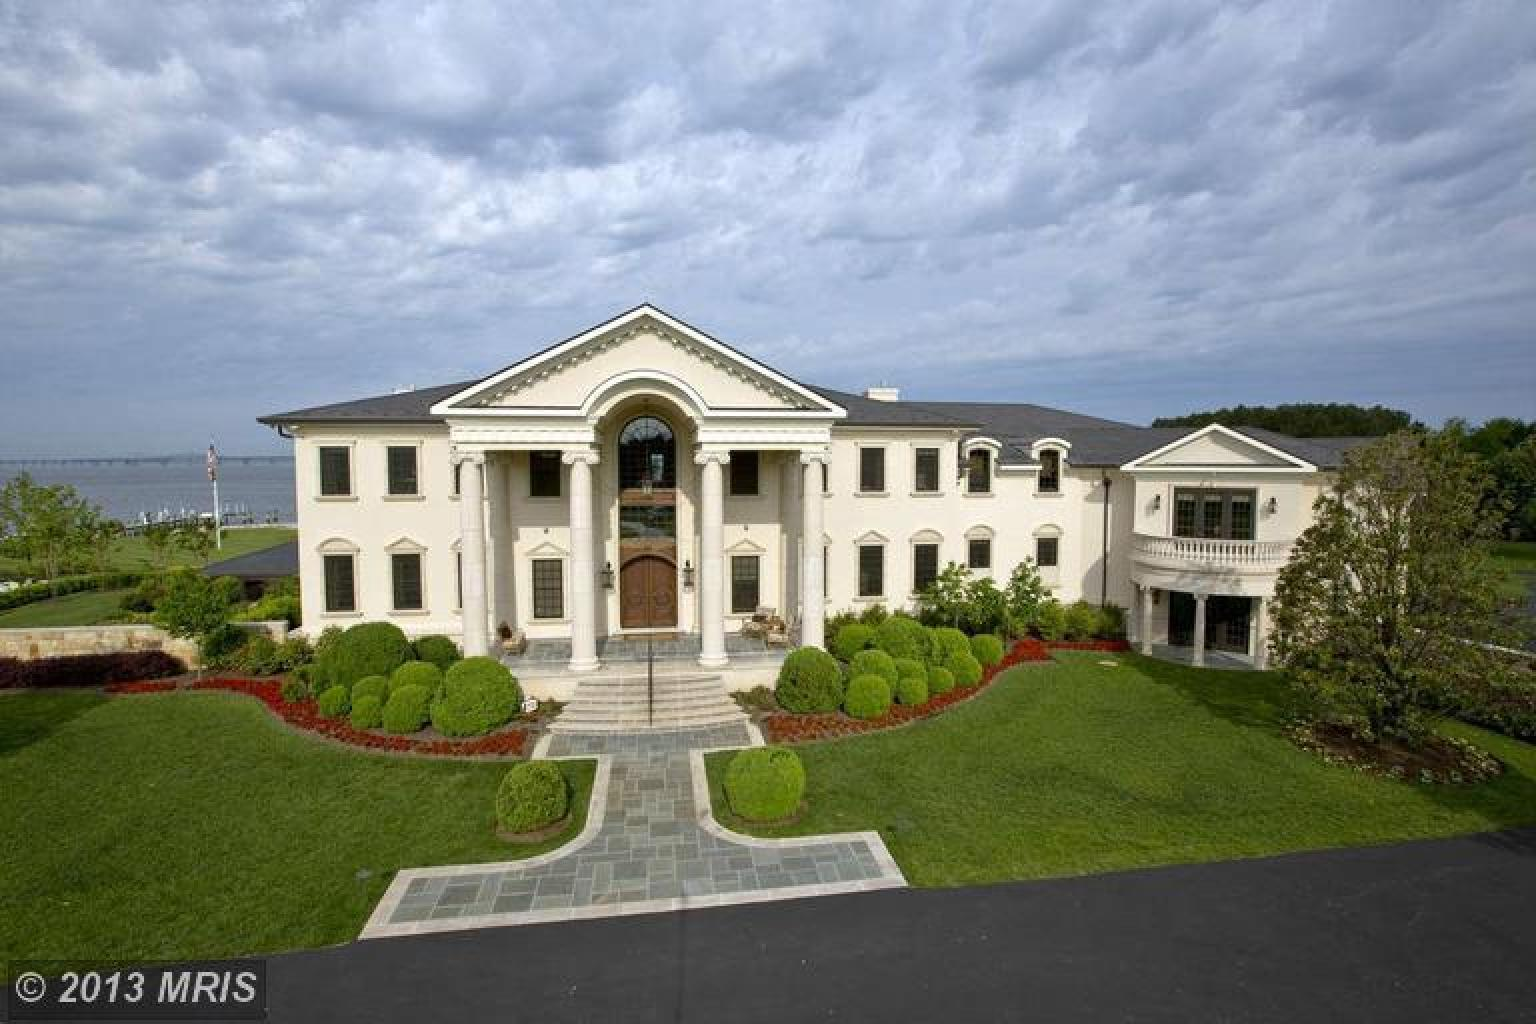 7 of the most expensive homes in and around washington dc worth 20 million or more photos huffpost - Biggest House In The World 2013